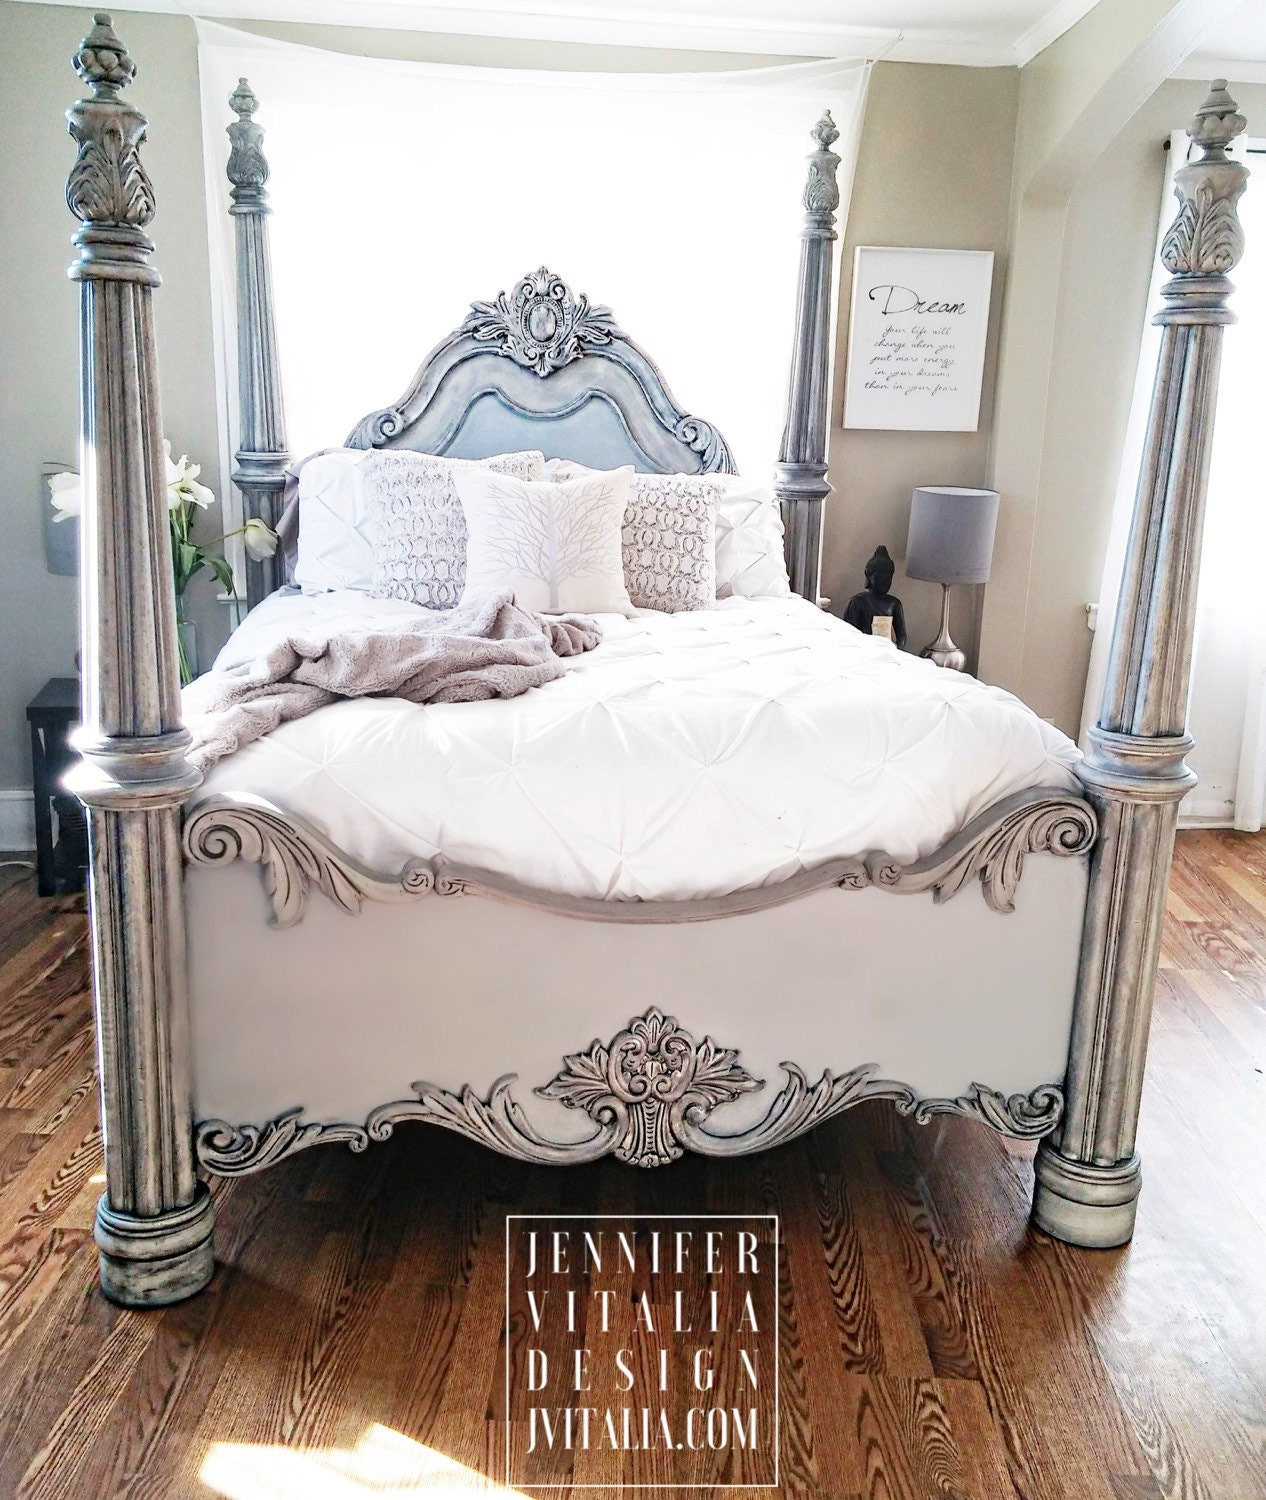 sold queen poster bed handpainted gray romantic bed frame. Black Bedroom Furniture Sets. Home Design Ideas